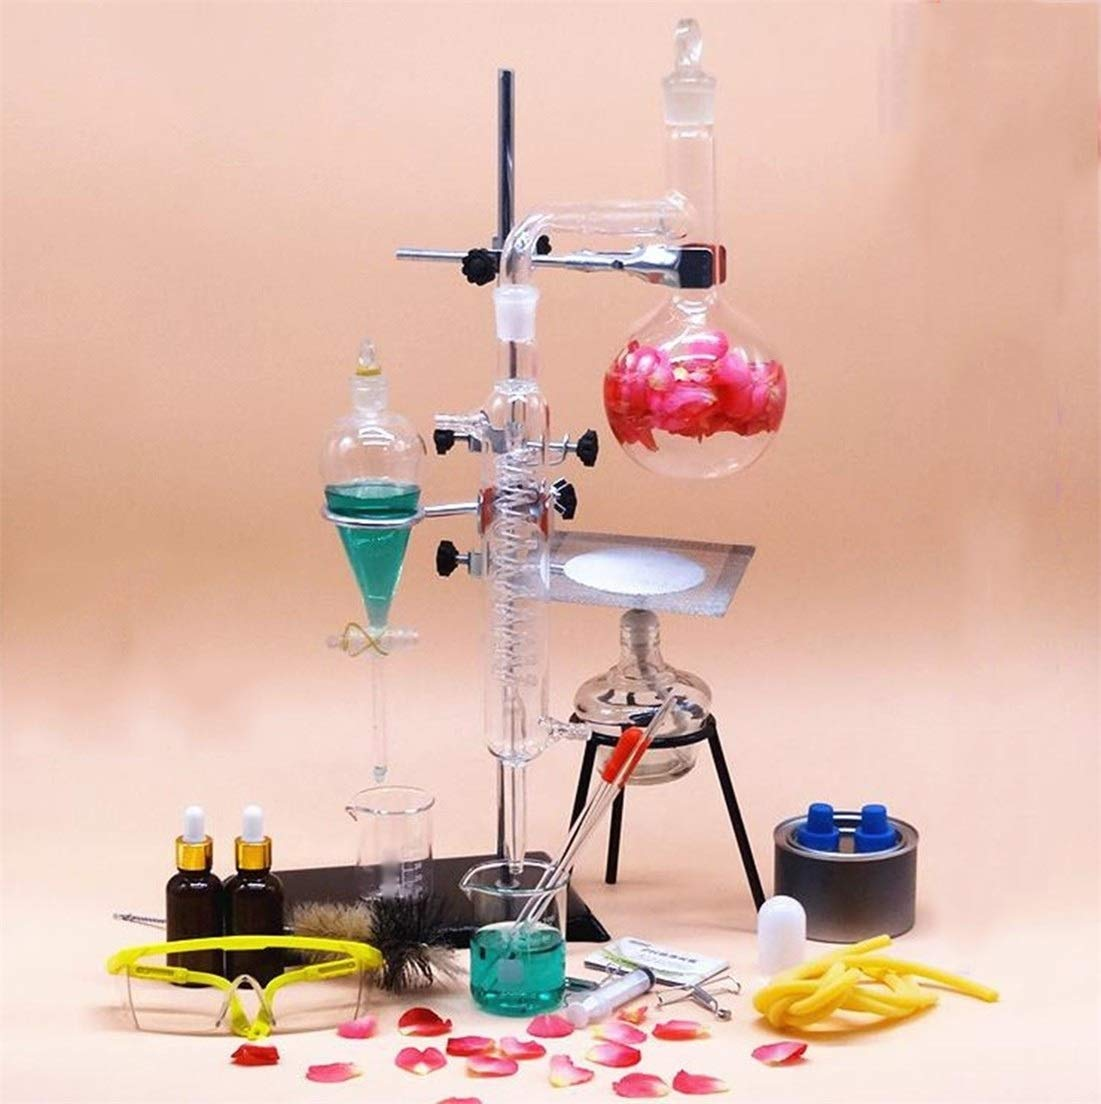 Wyyggnb Laboratory Equipment, Distillation Unit Teaching Equipment Glassware Making Essential Oils Alcohol Distilled Water Filter Chemical Equipment by Wyyggnb